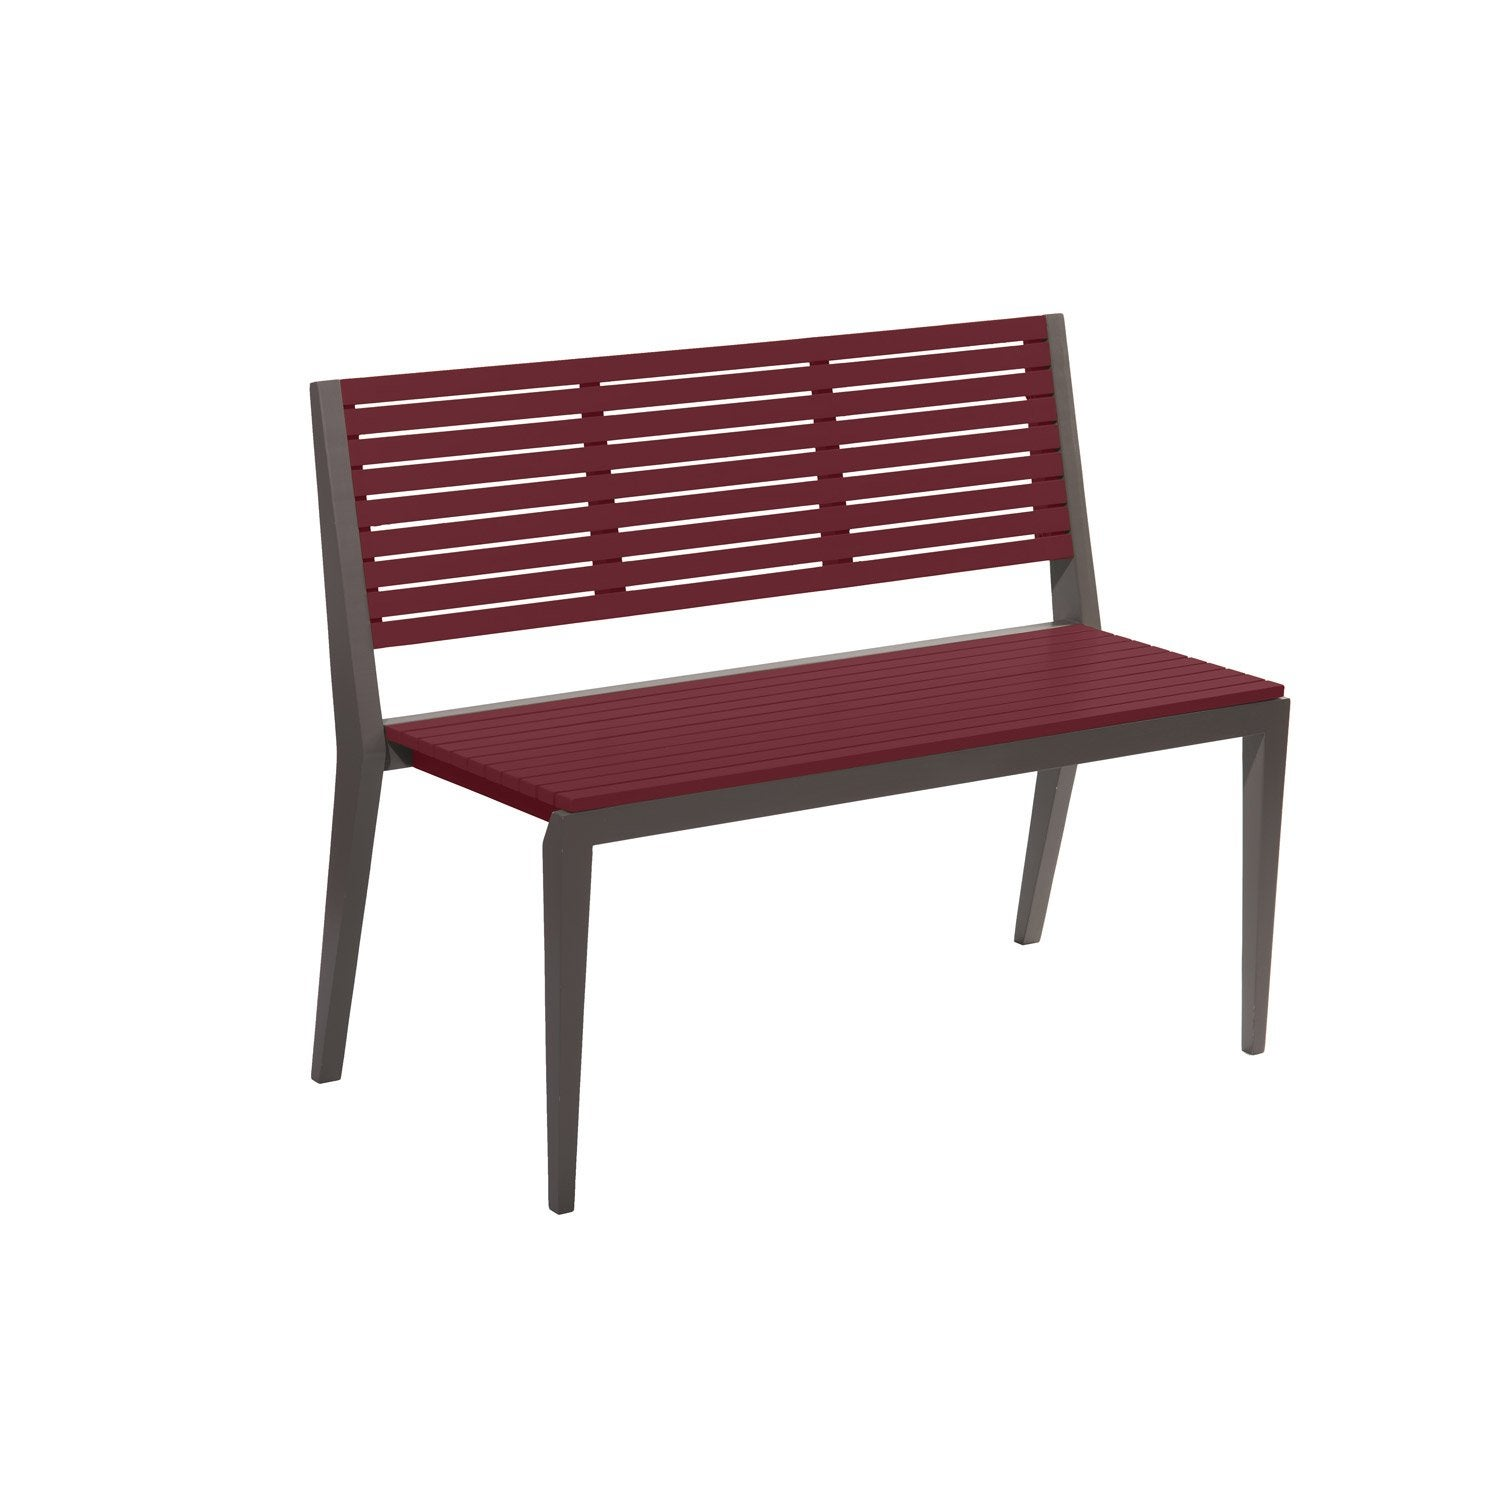 Banc 3 places de jardin en bois portofino rouge basque for Ocultacion jardin leroy merlin